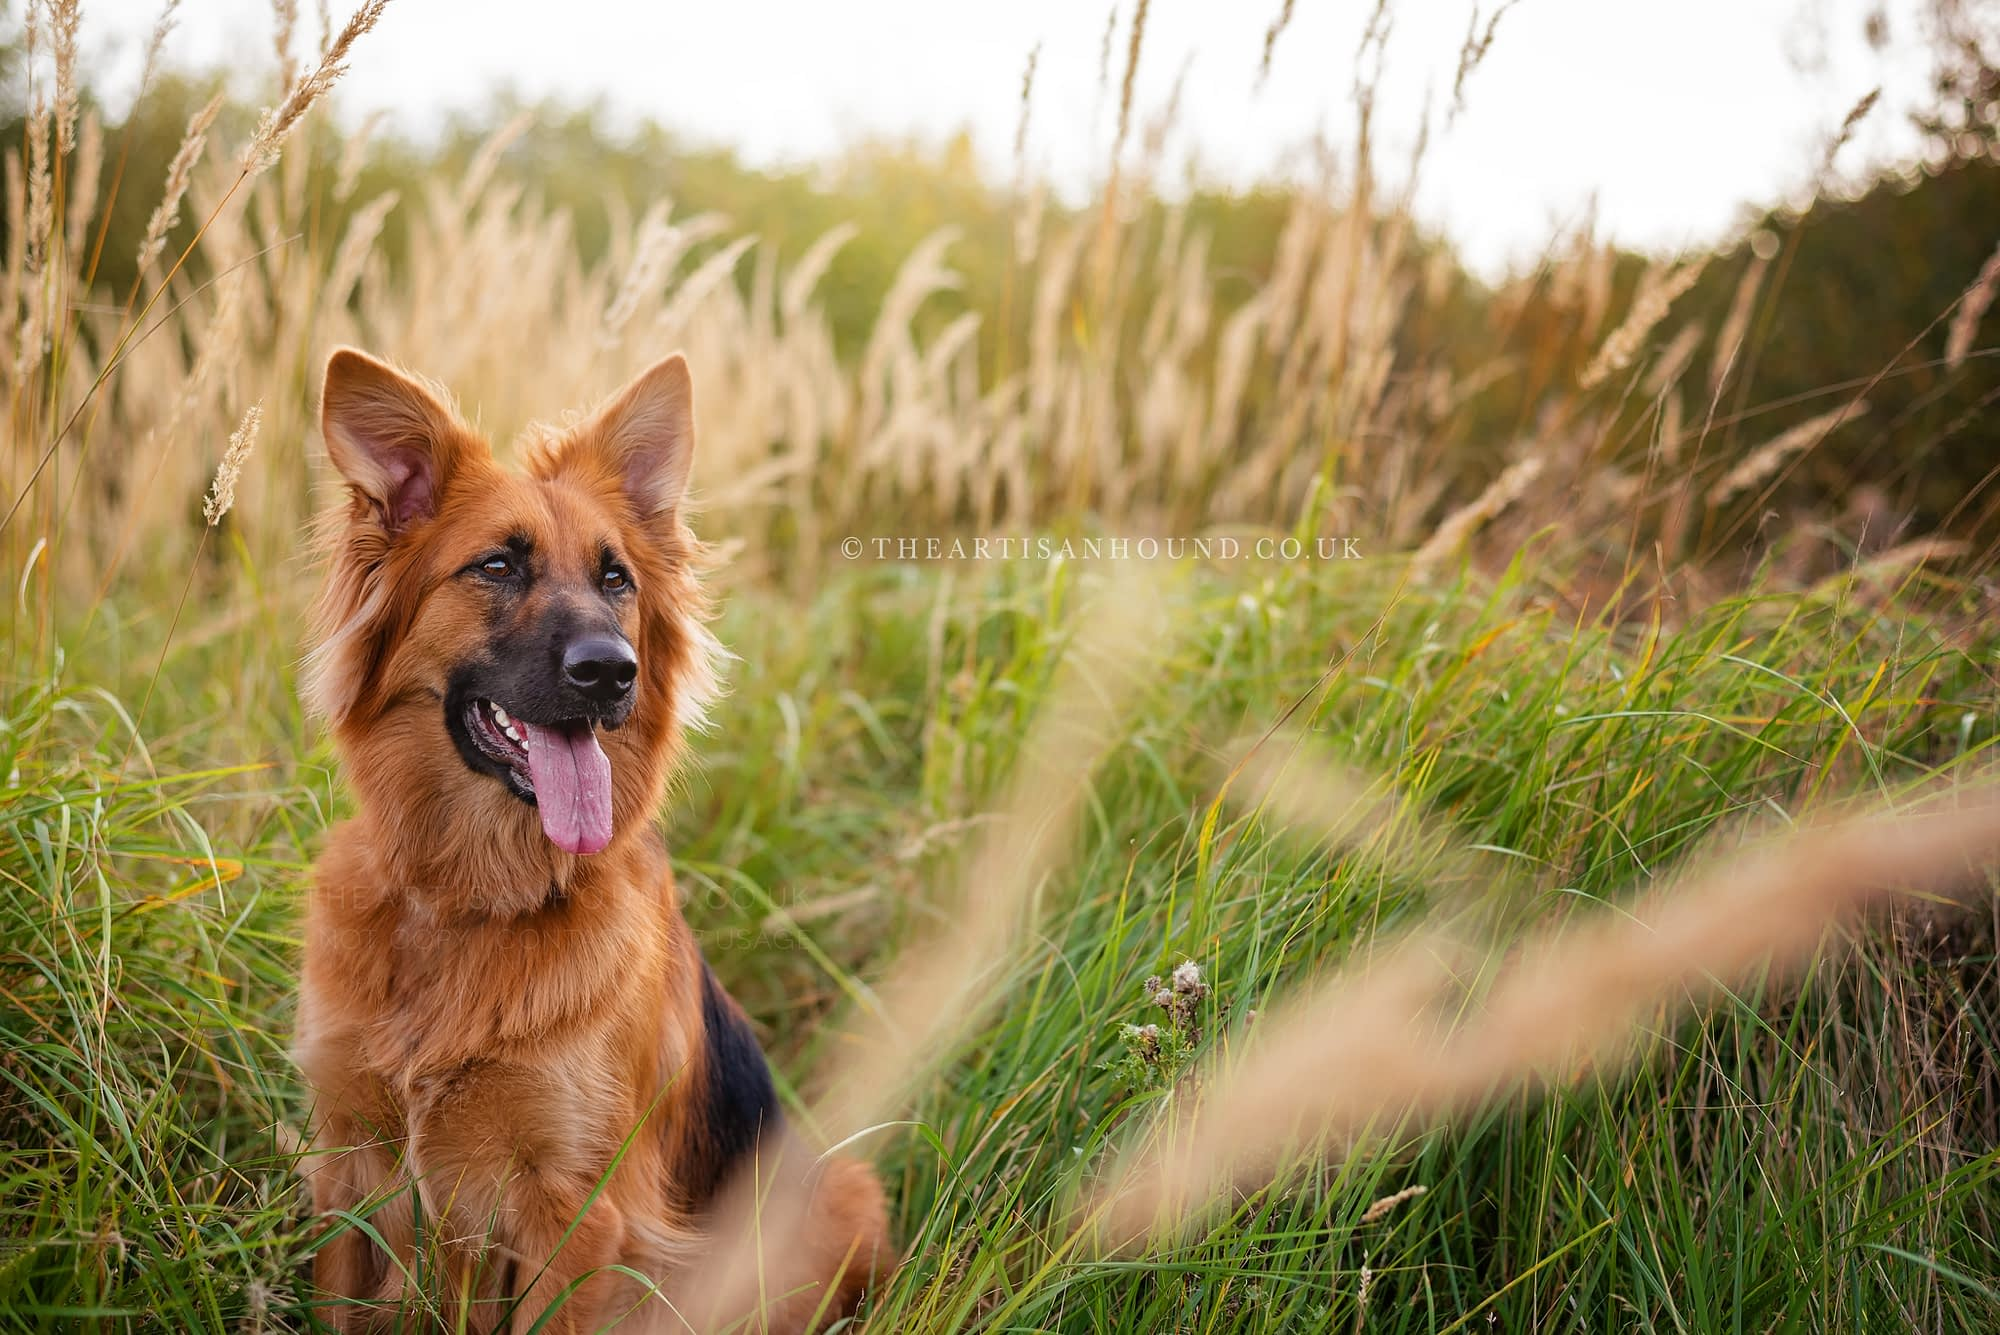 Large long-haired dog sitting in tall summer grass